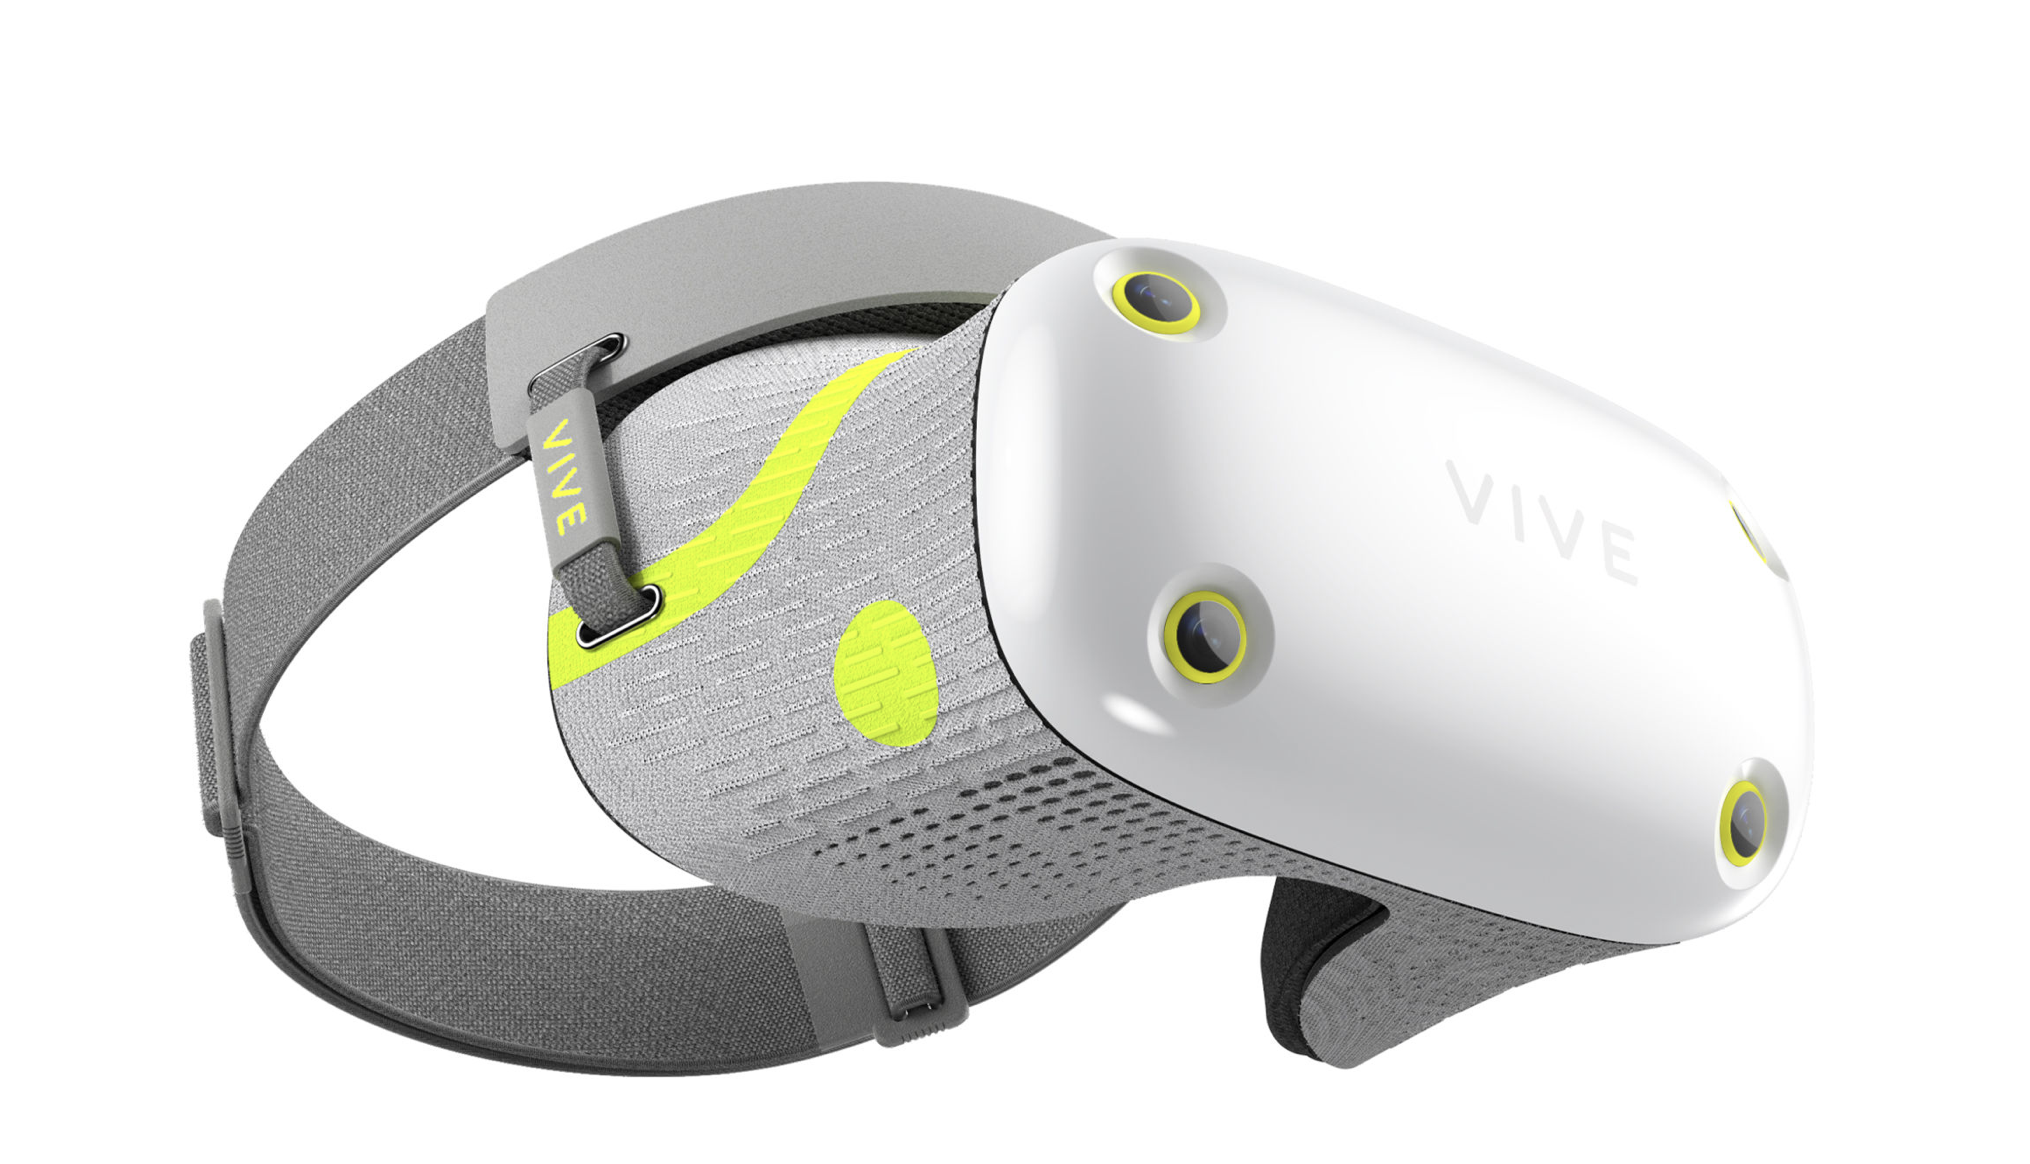 HTC Vive Air concept looks like a fitness-focused VR headset     - CNET